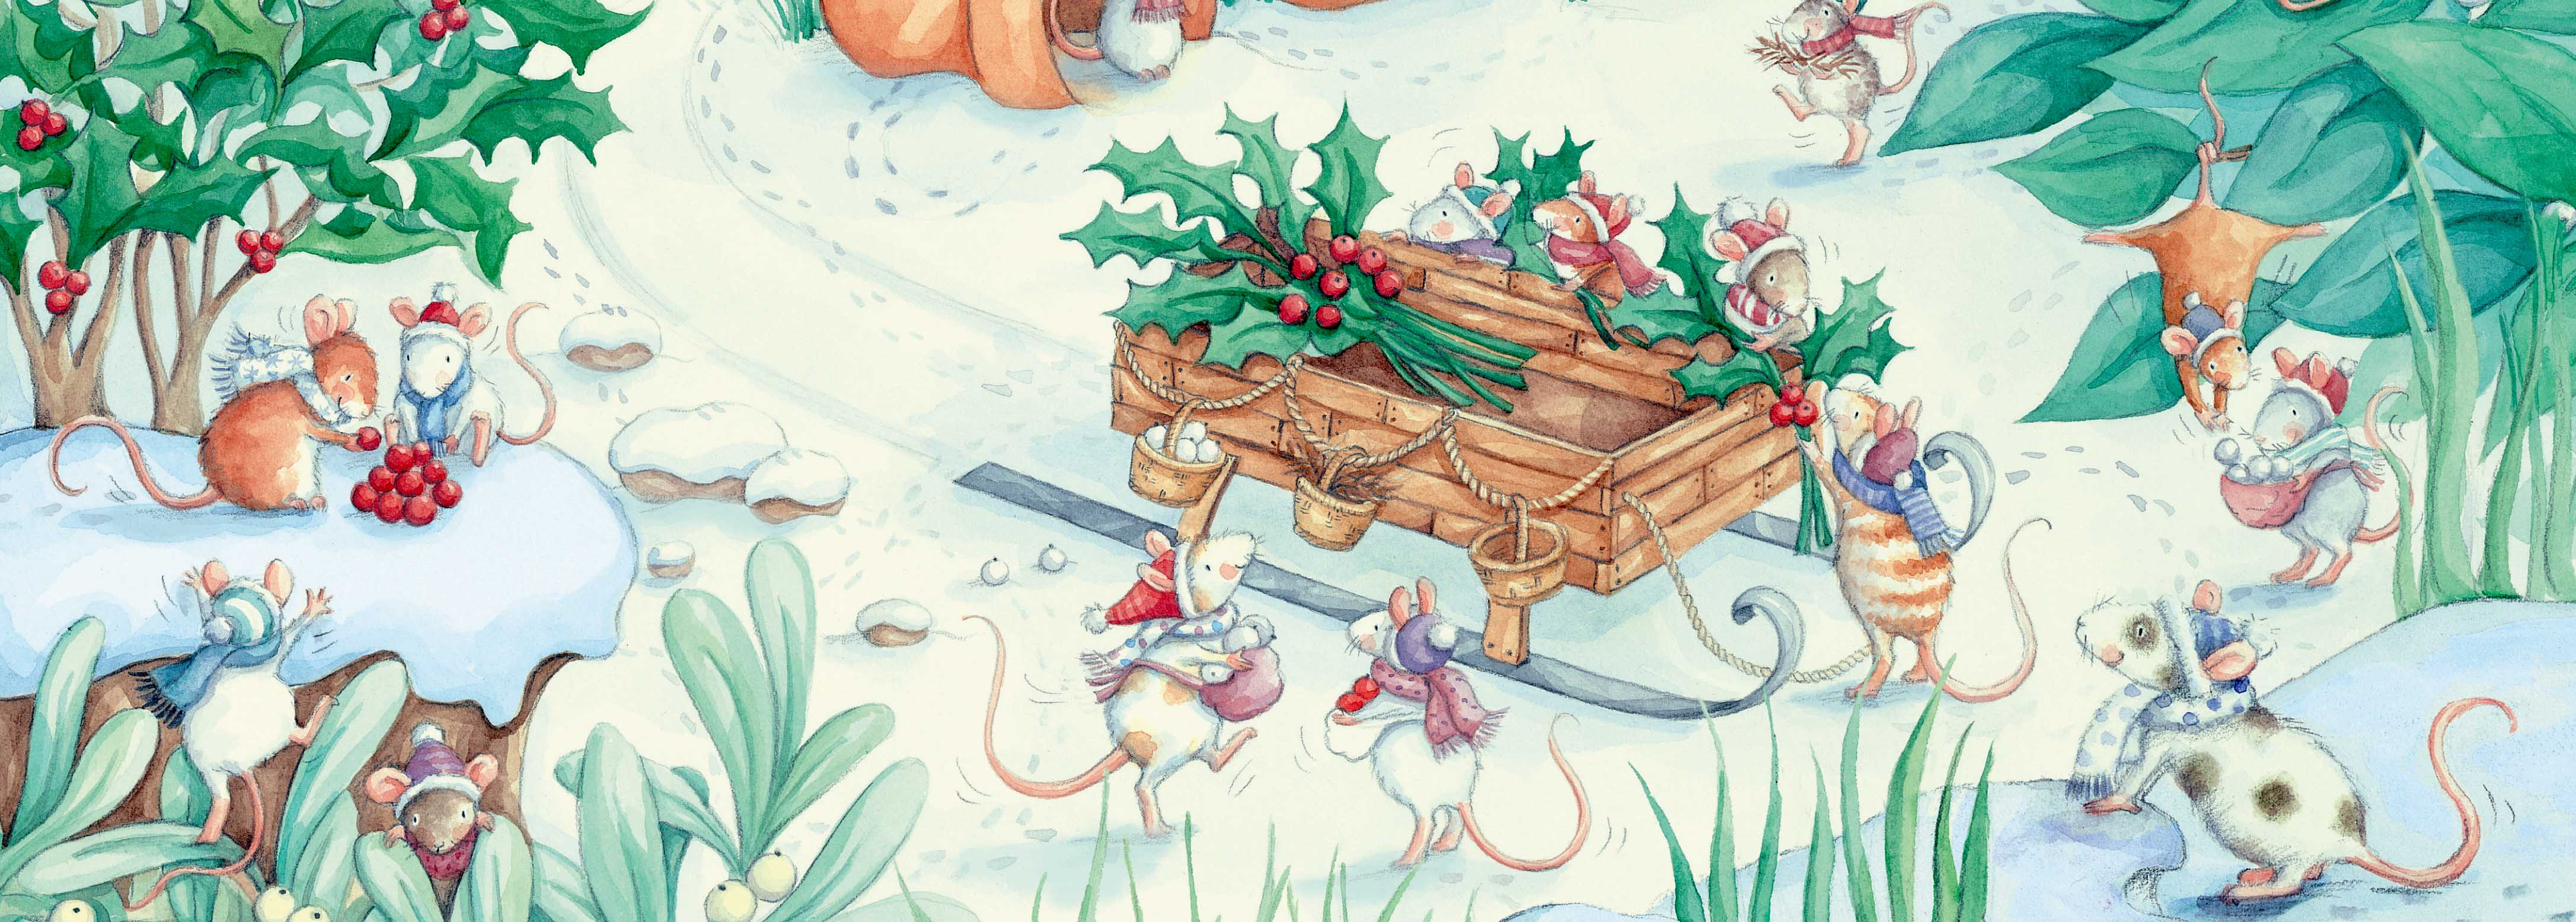 Mice collecting holly and berries christmas